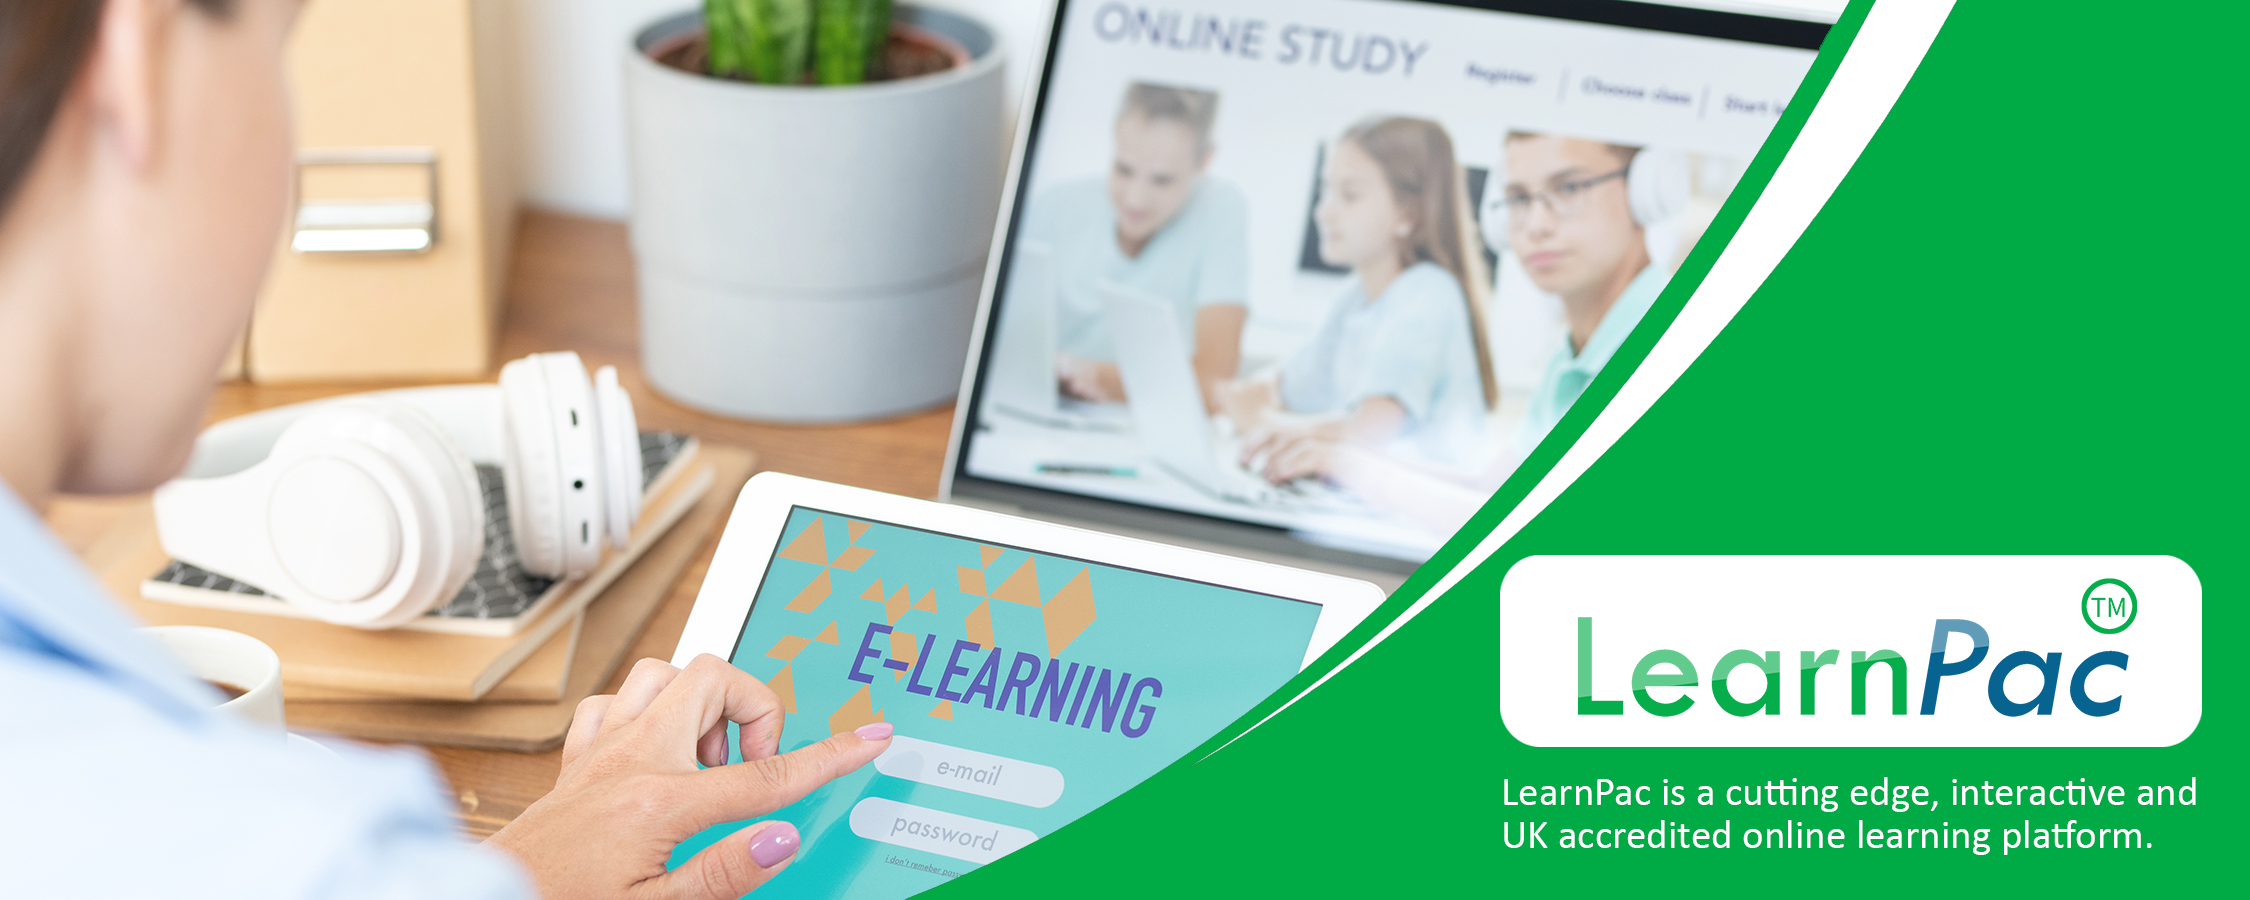 Care Certificate - 15 Standards - E-Learning Courses - LearnPac Systems UK -